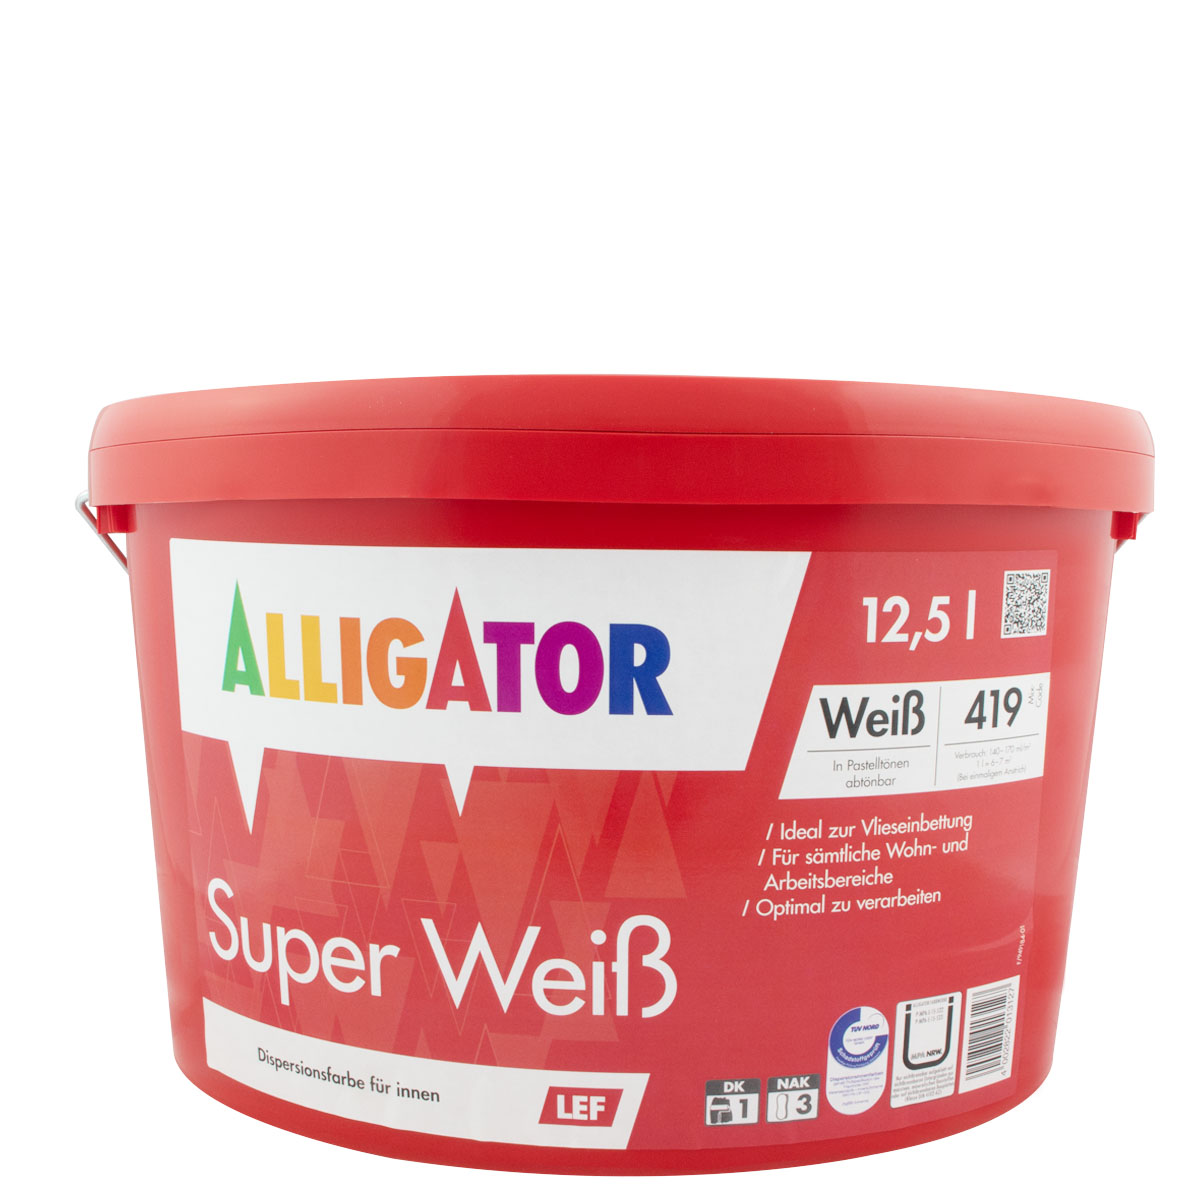 Alligator Super Weiß LEF 12,5L weiss, Dispersions-Innenfarbe